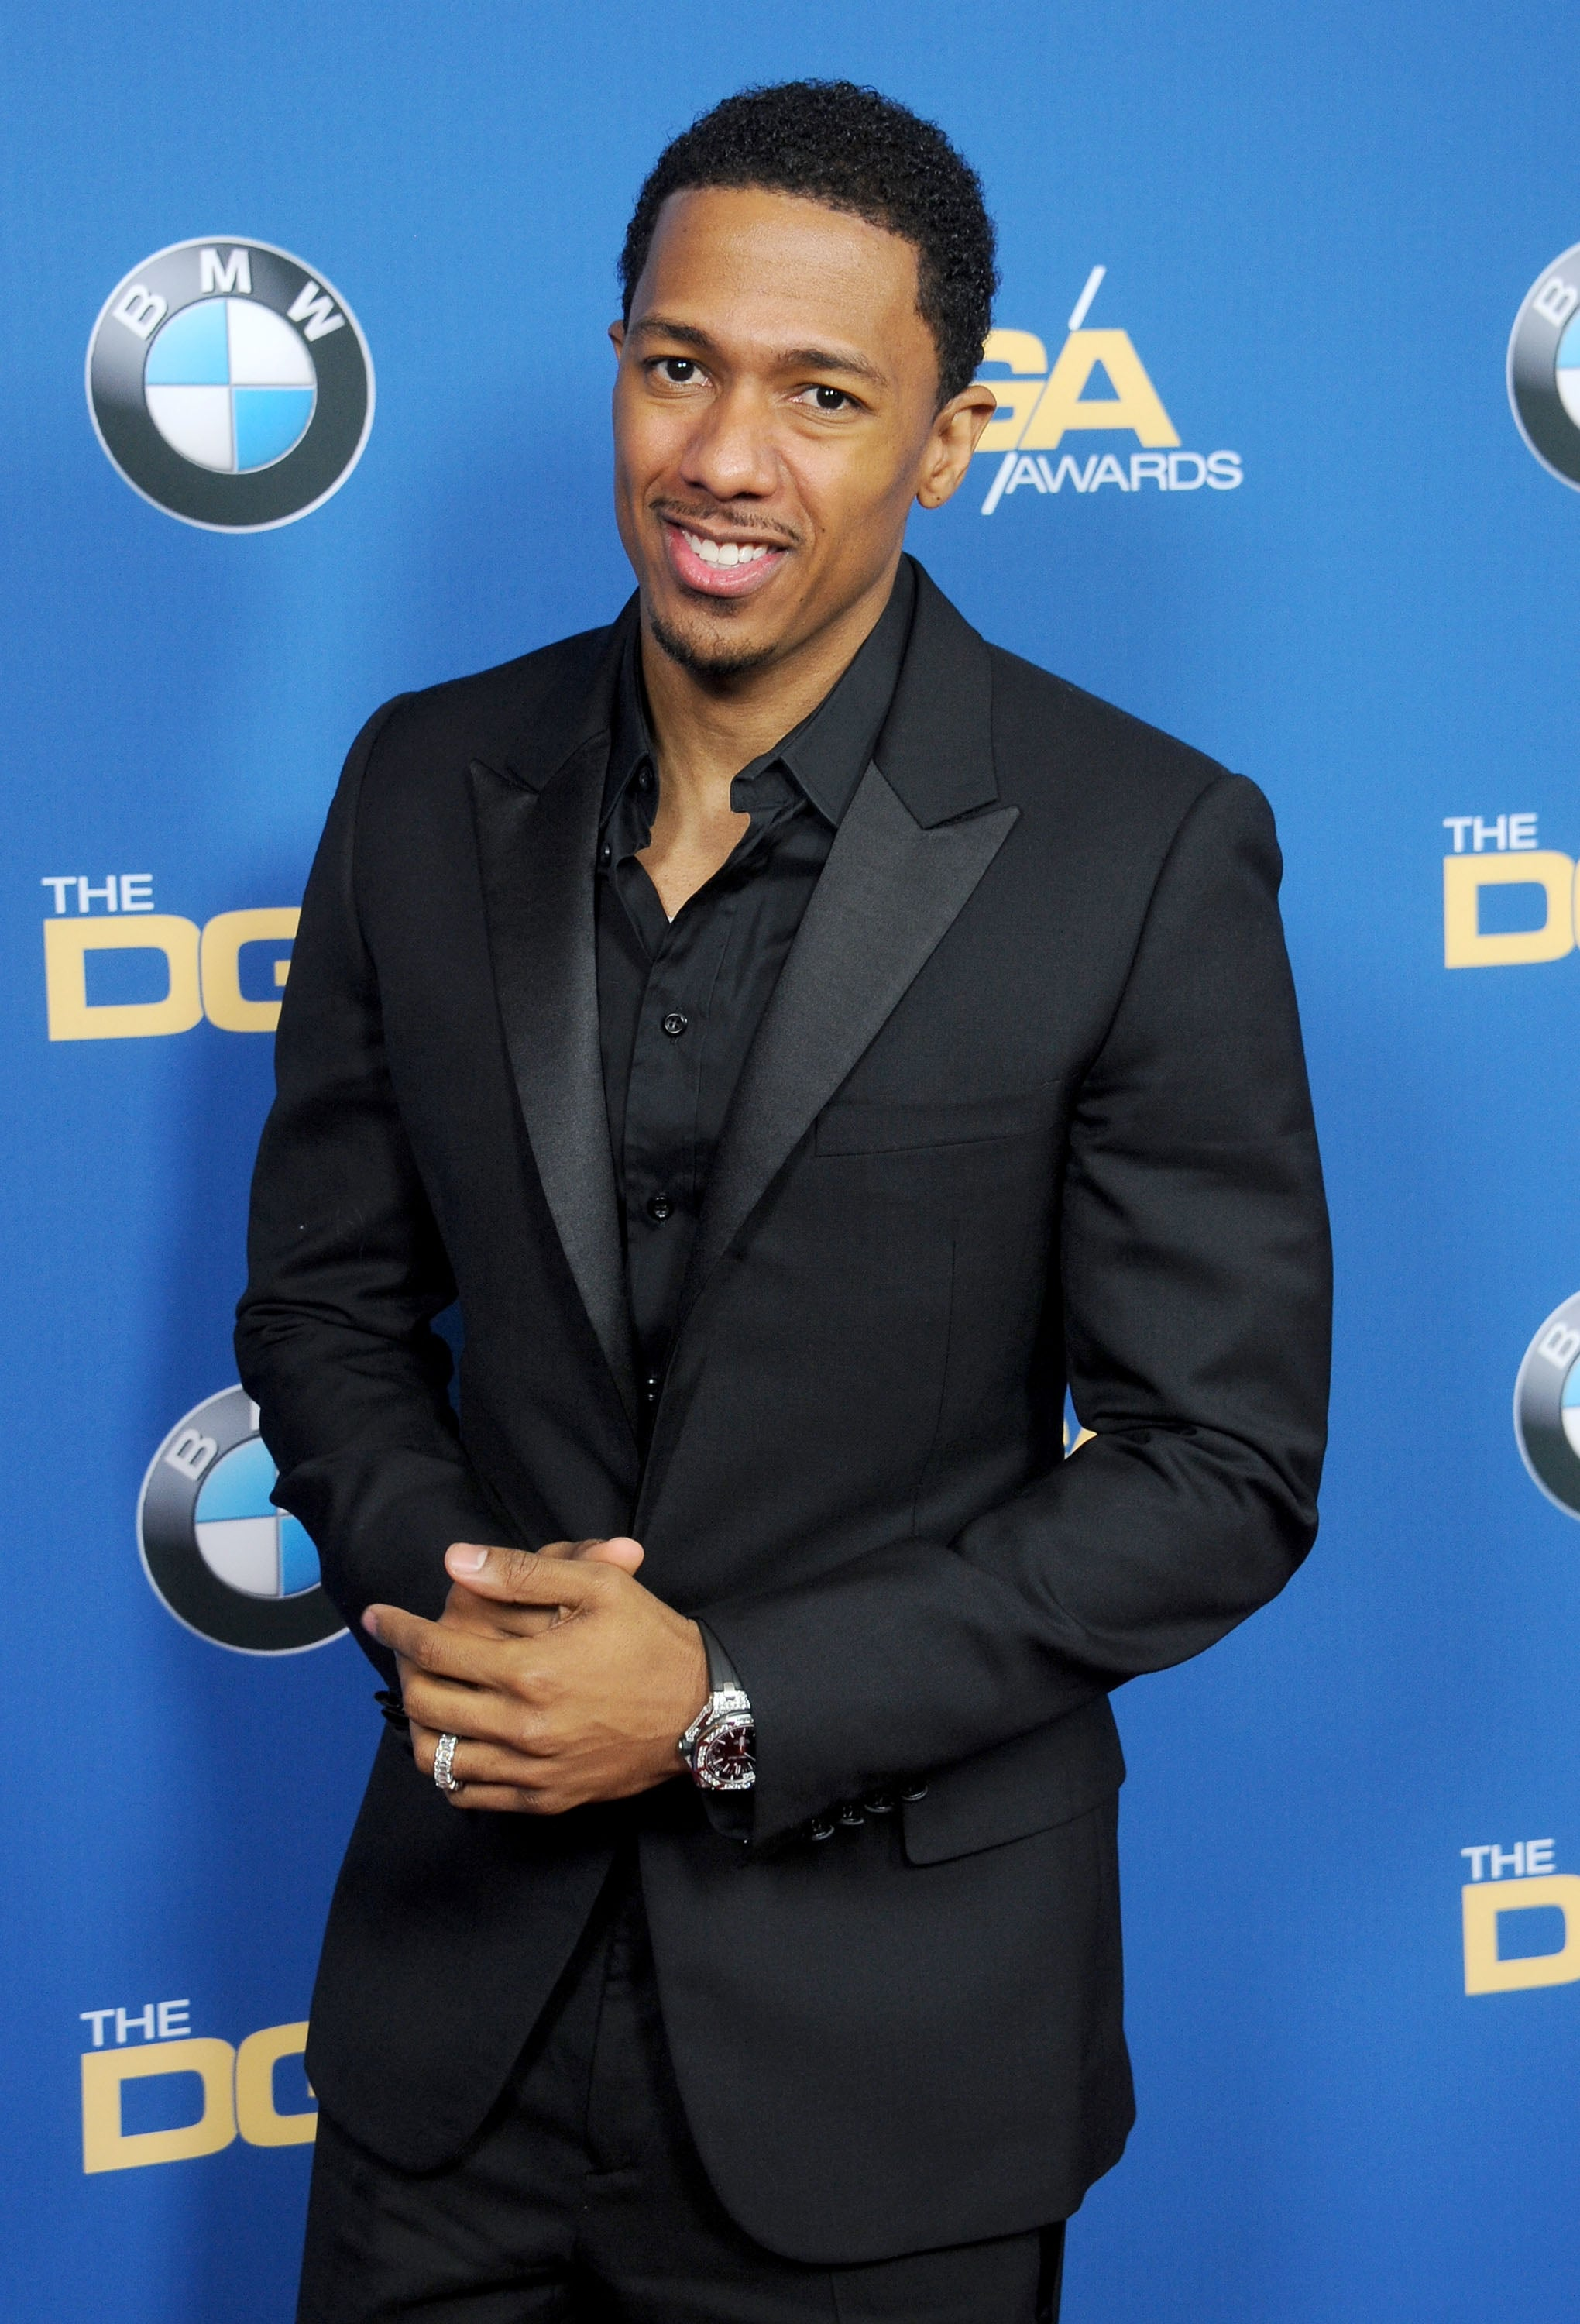 Nick Cannon attended the Directors Guild Awards.